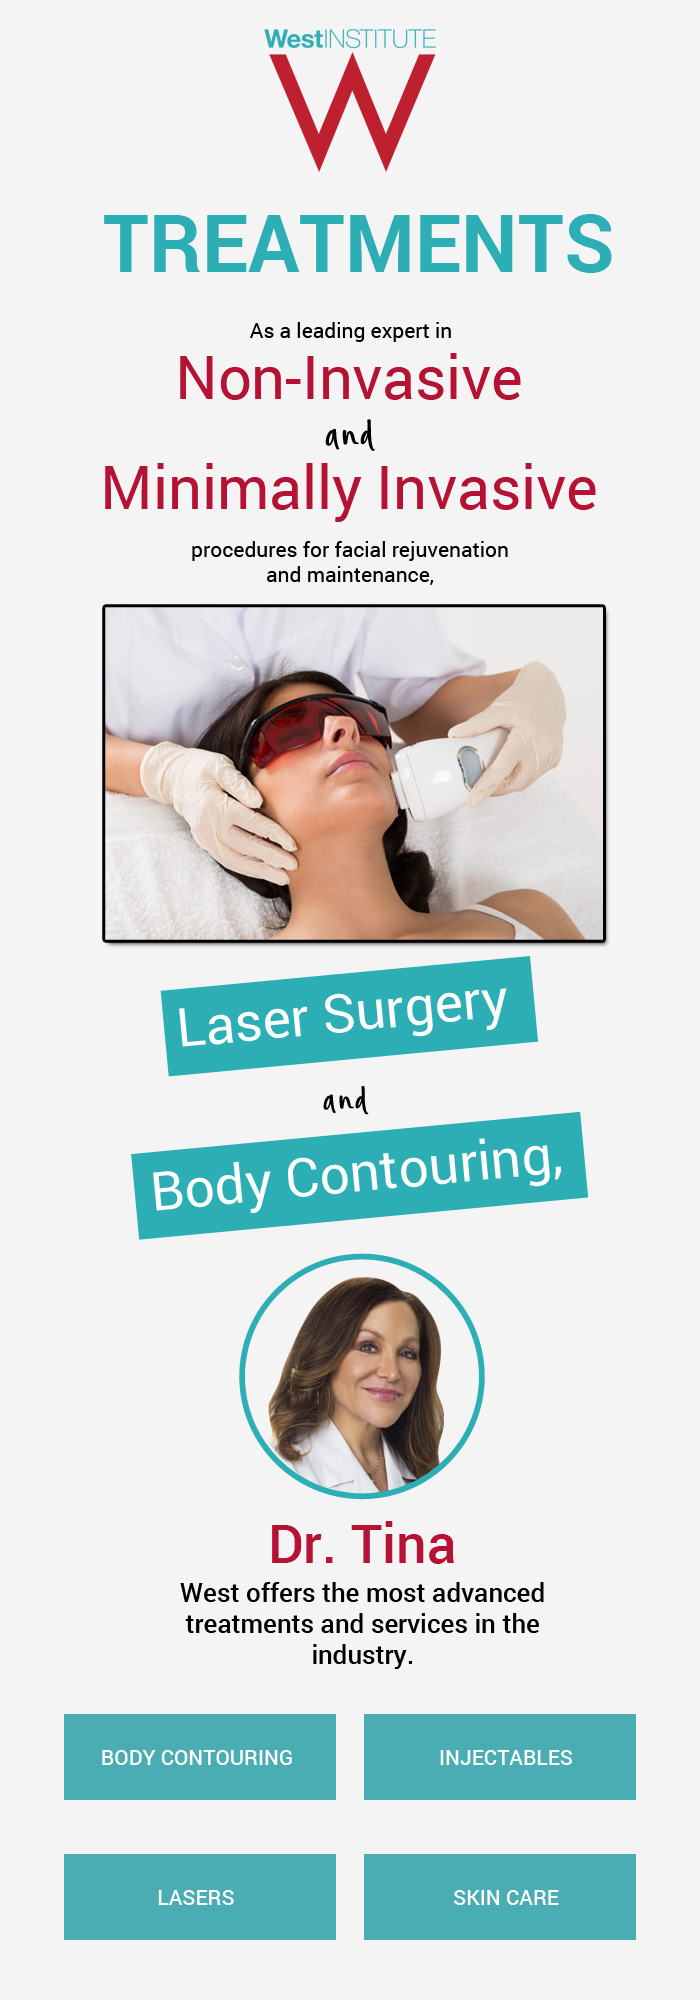 Visit The West Institute for the Most Advanced Dermatological Treatments